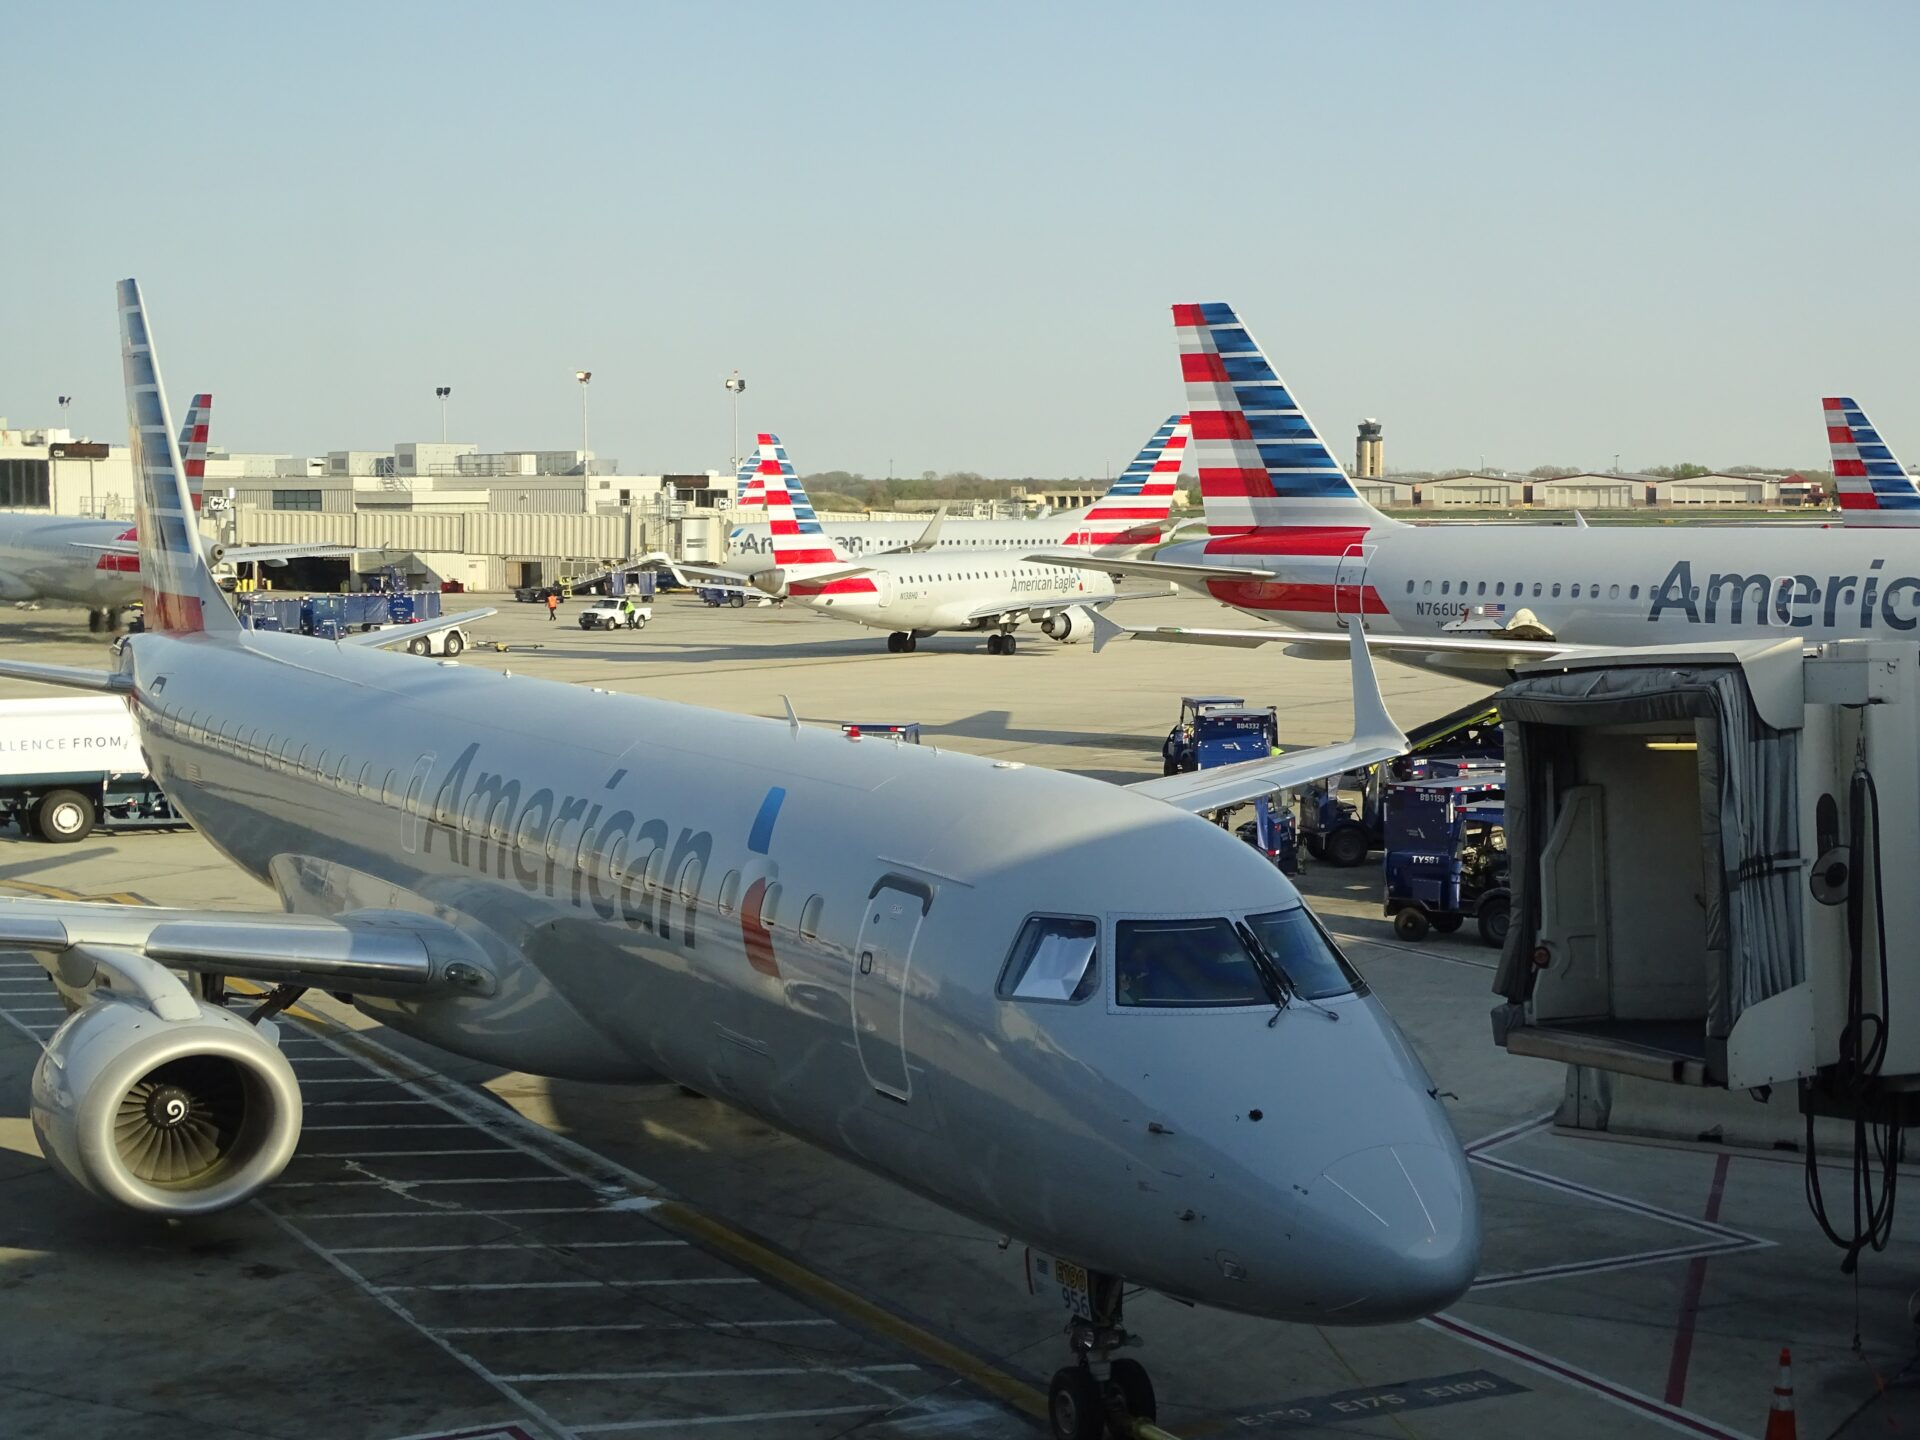 american airlines tarmac airport airplane